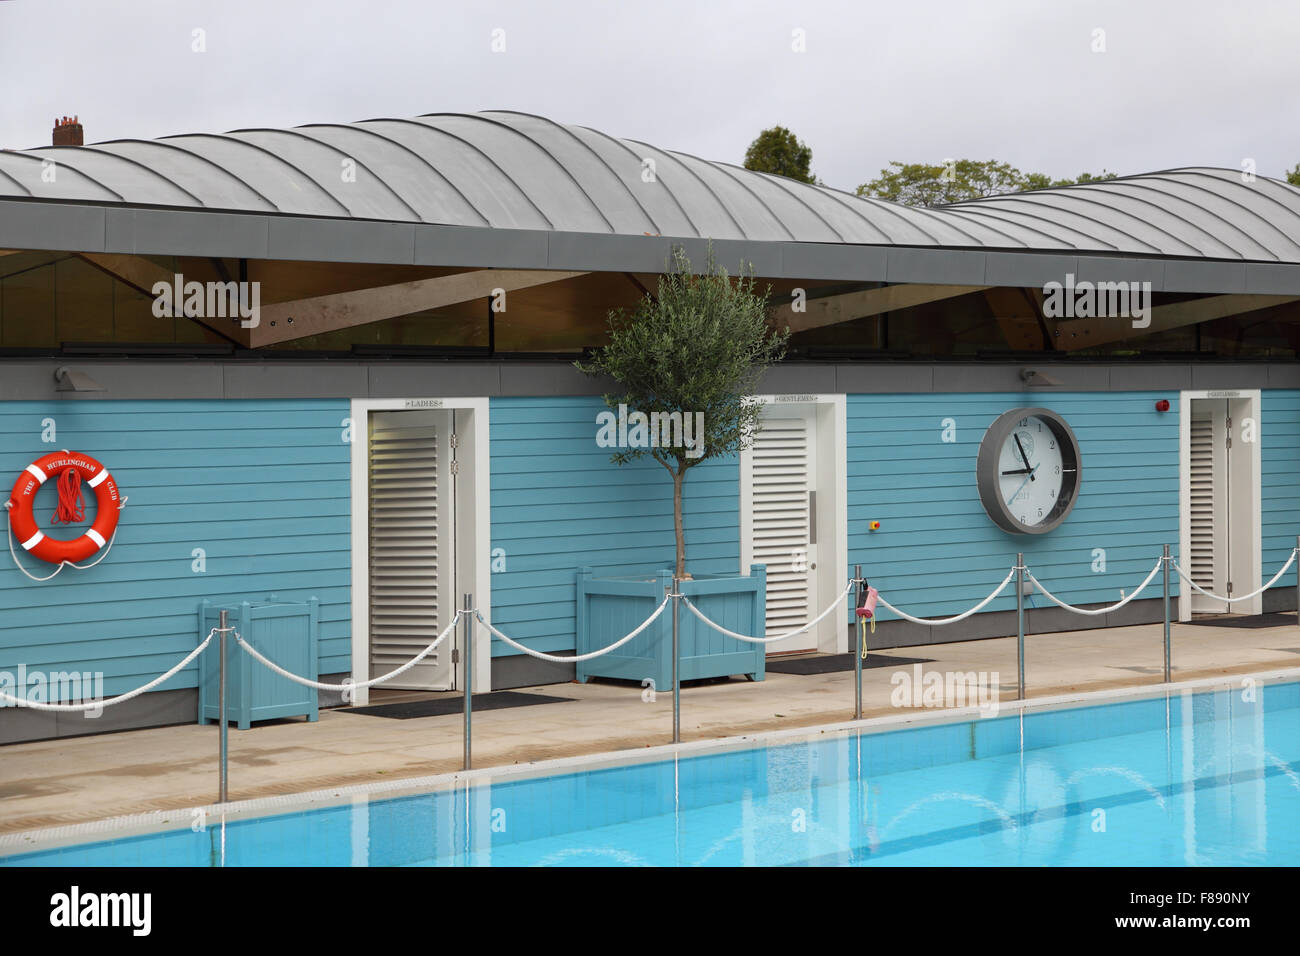 A changing room block at a new open air swimming pool in london uk stock photo 91167271 alamy for Open door swimming pool london